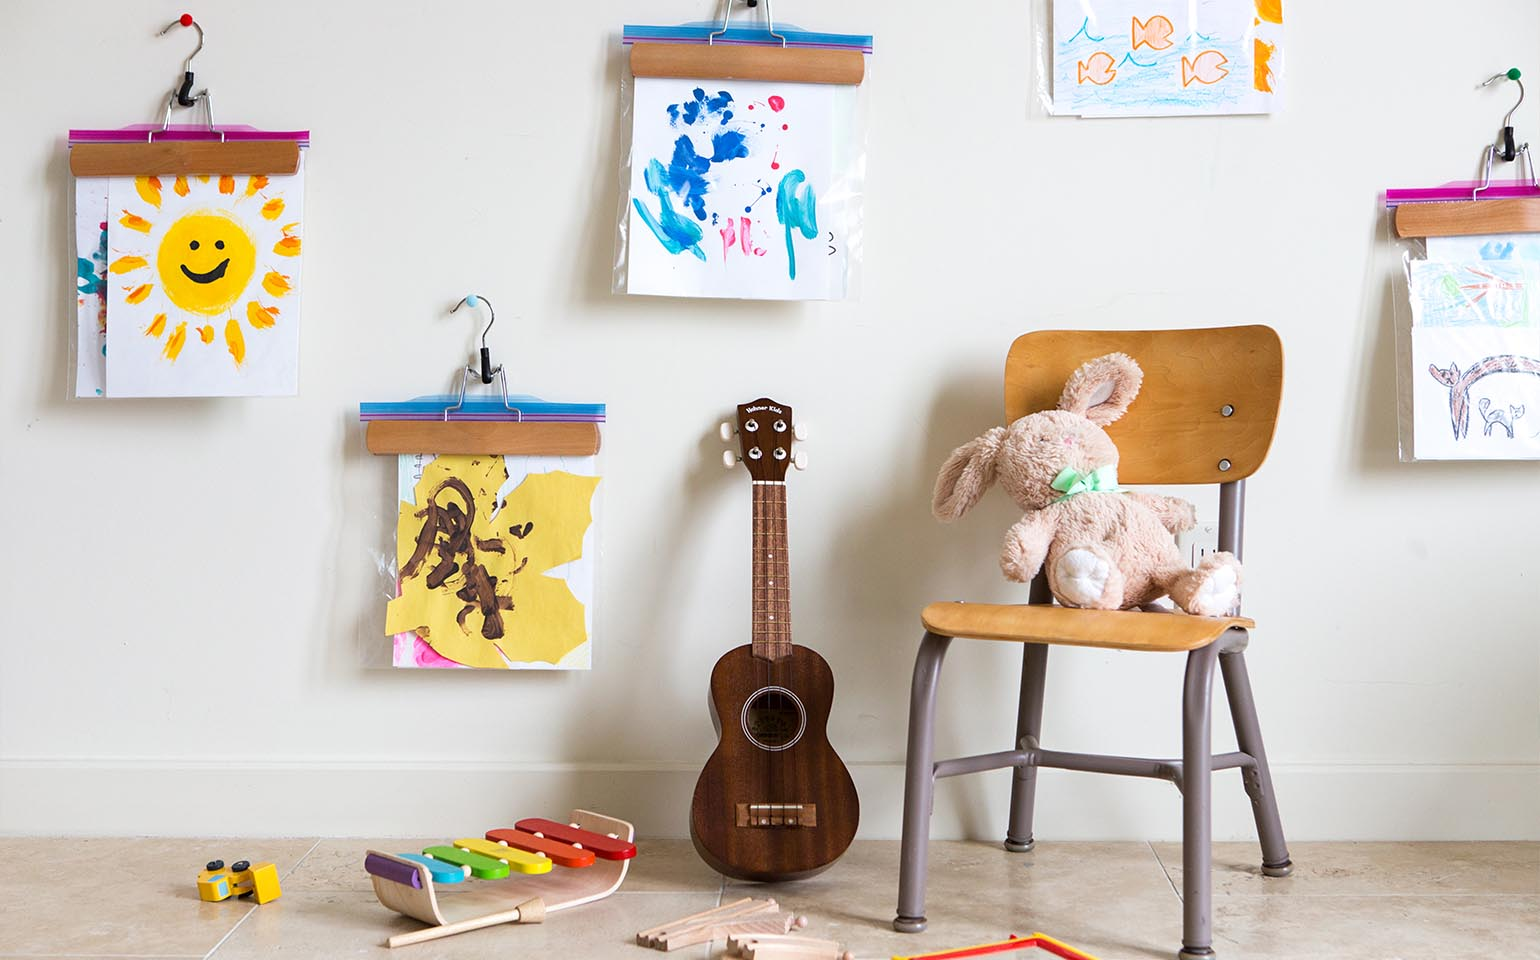 10 unusual and clever ideas to display your childrens art